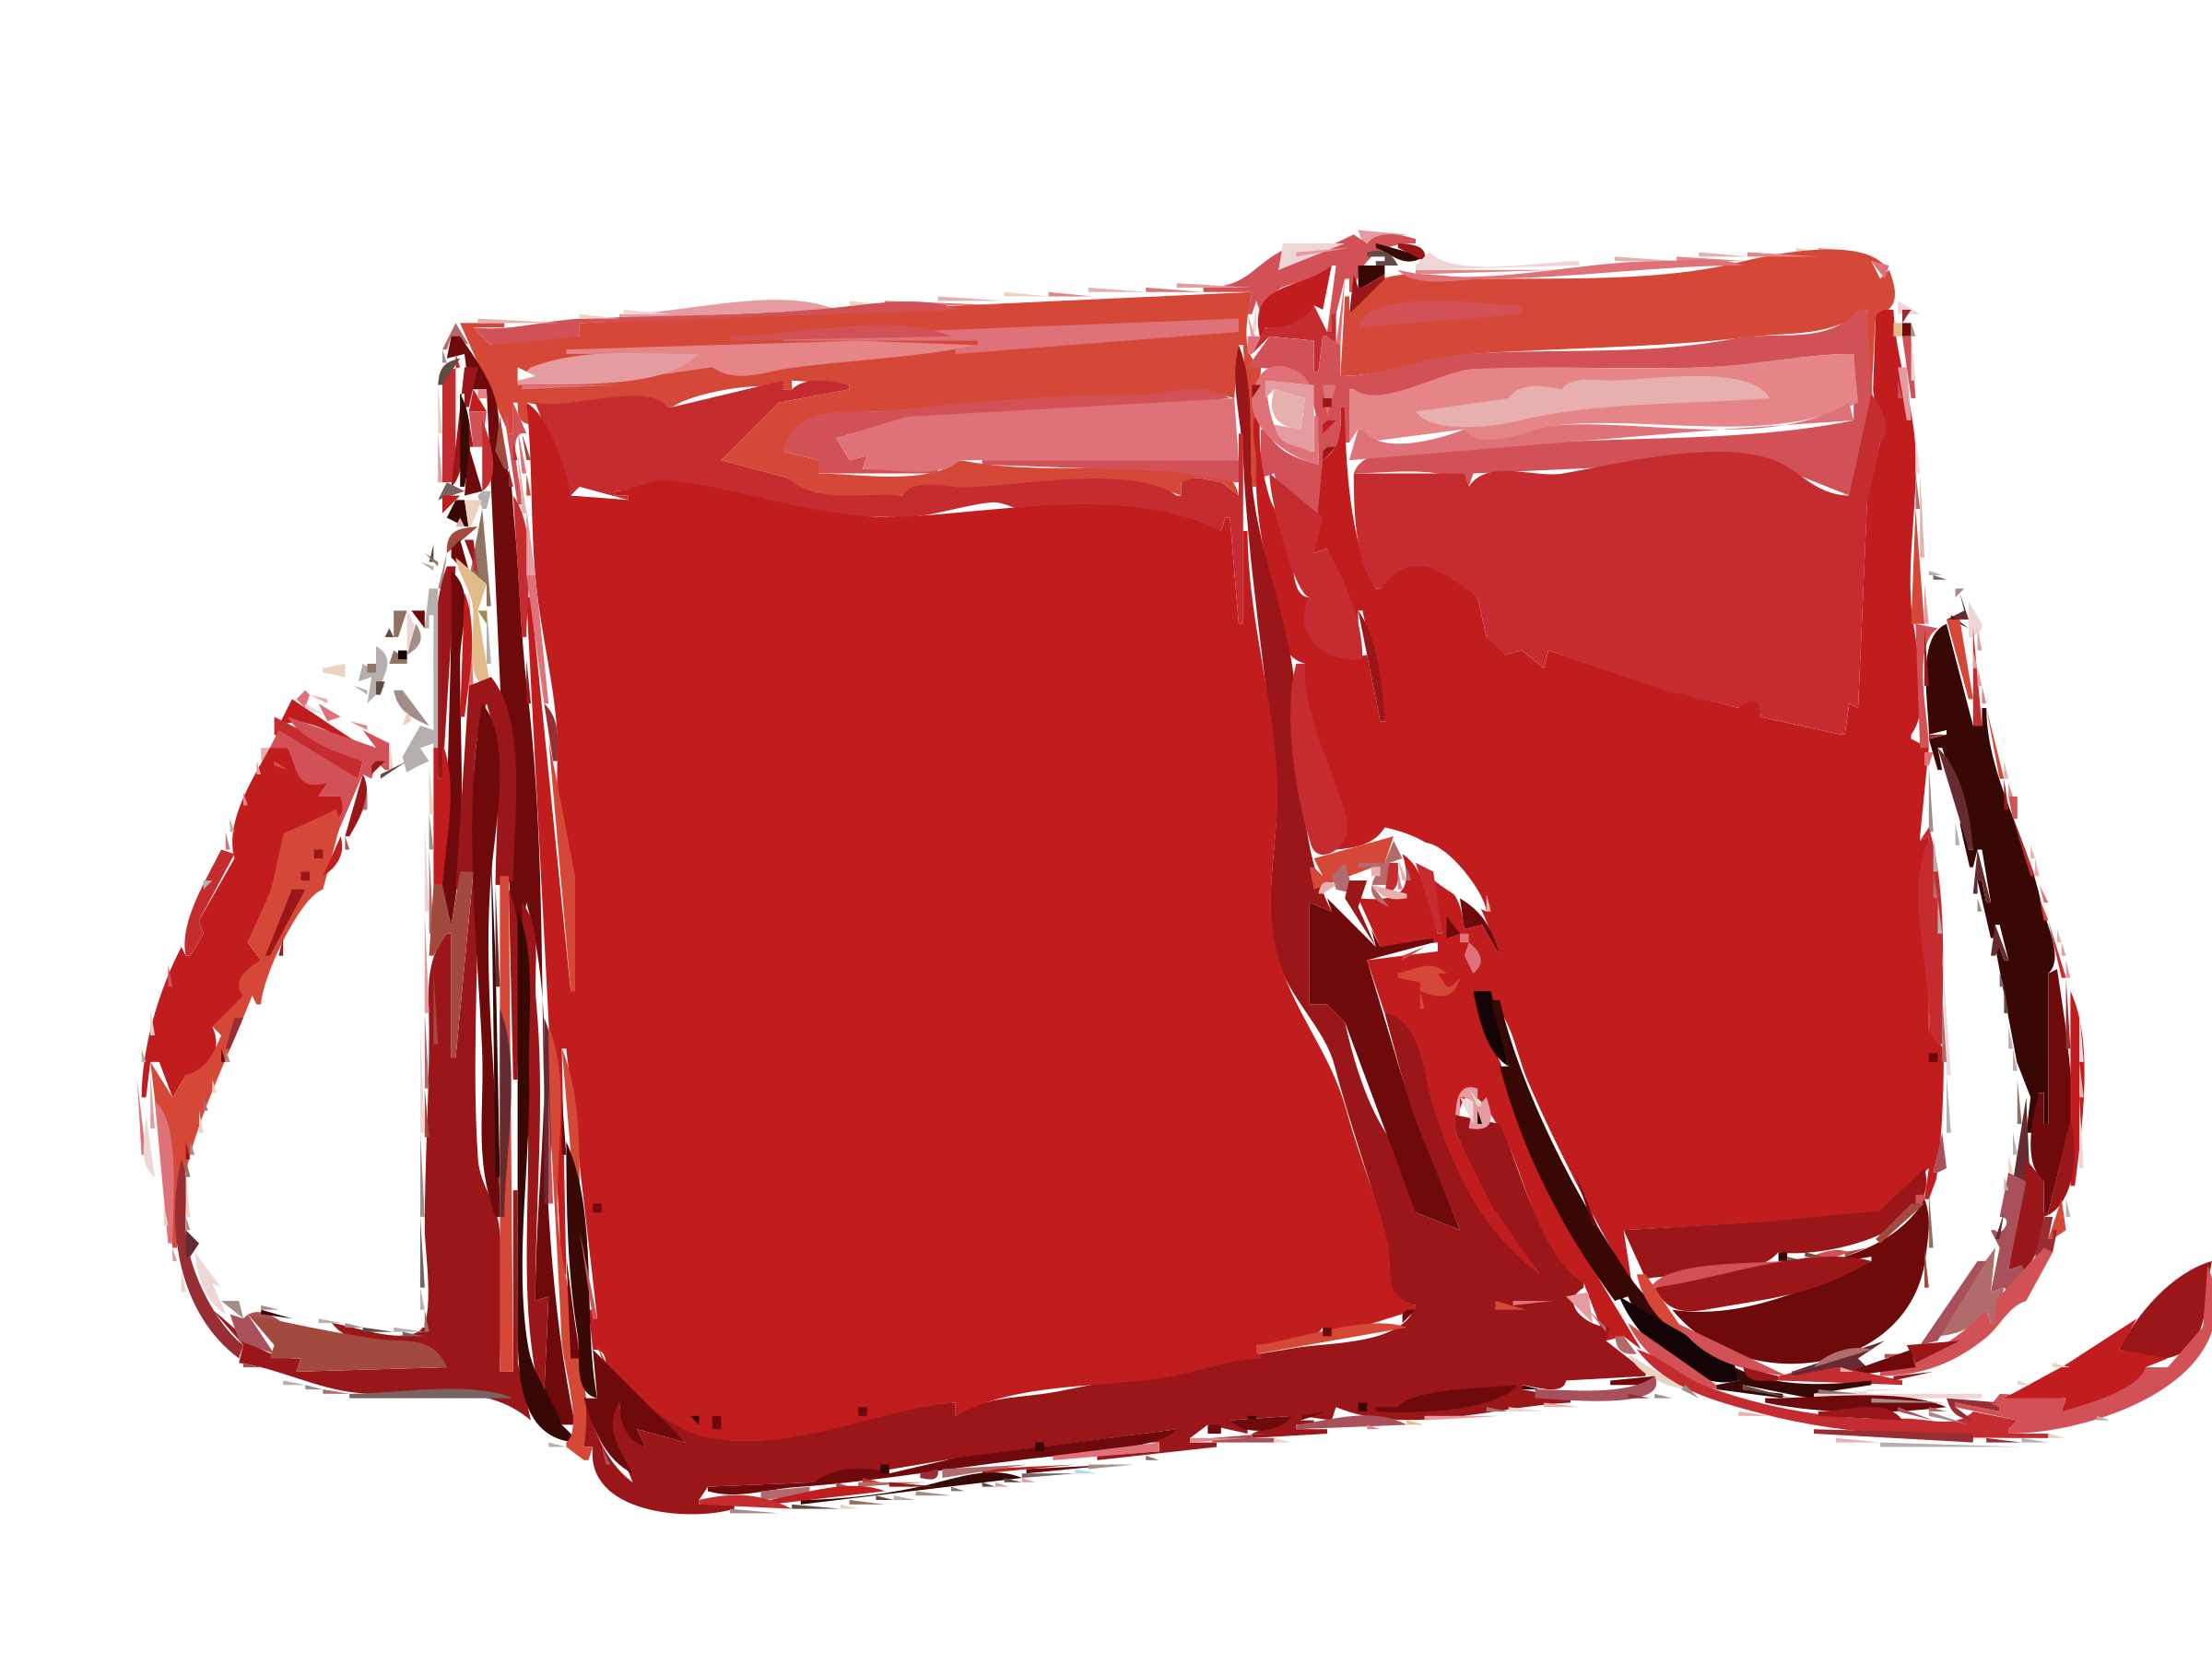 Red Leather Handbag without logo by rejon